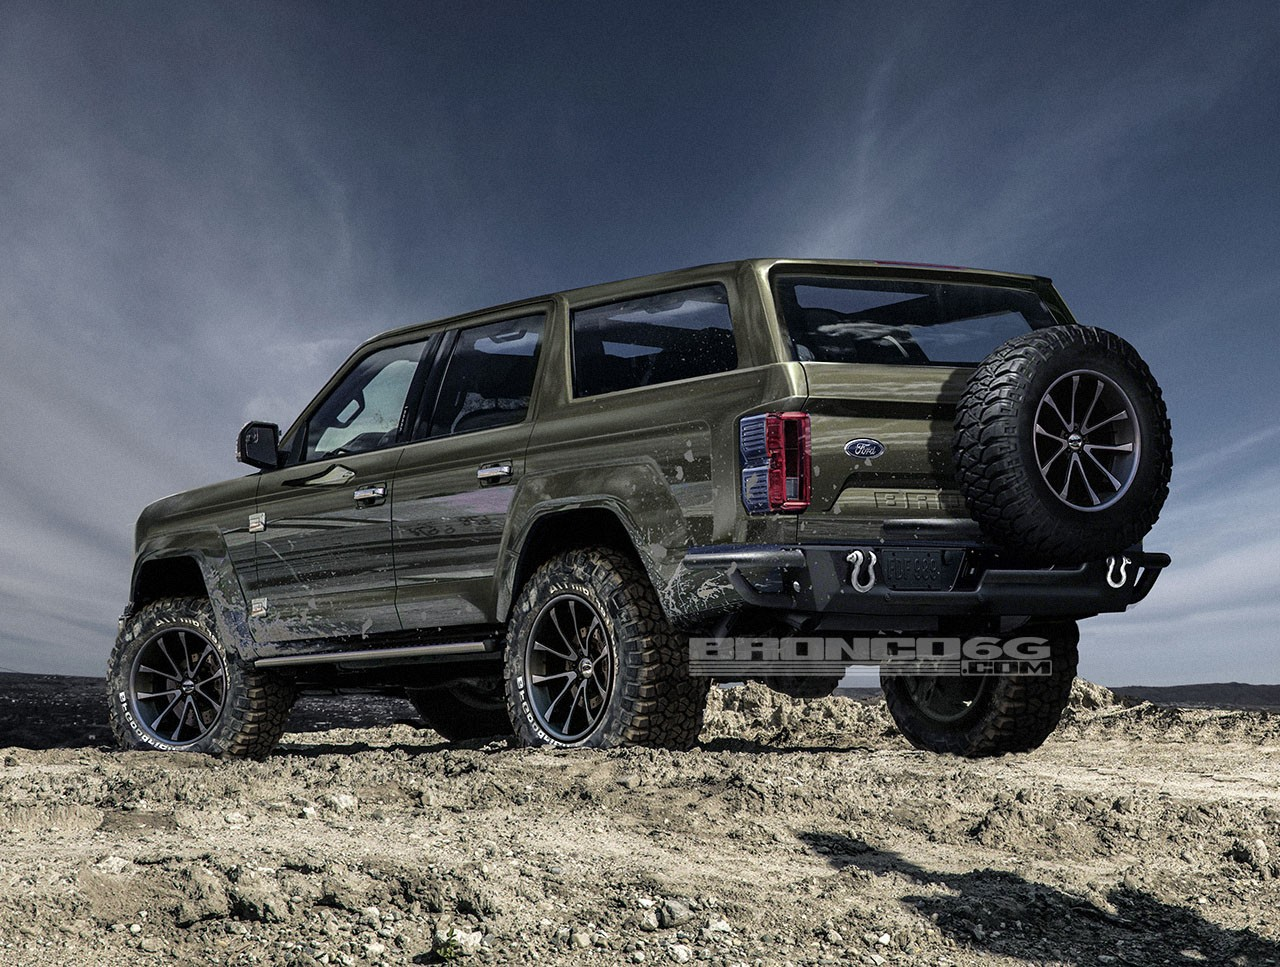 Ford Explorer 2017 Sport Price >> Rendering: 2020 Ford Bronco Four-Door SUV Looks Ready to ...